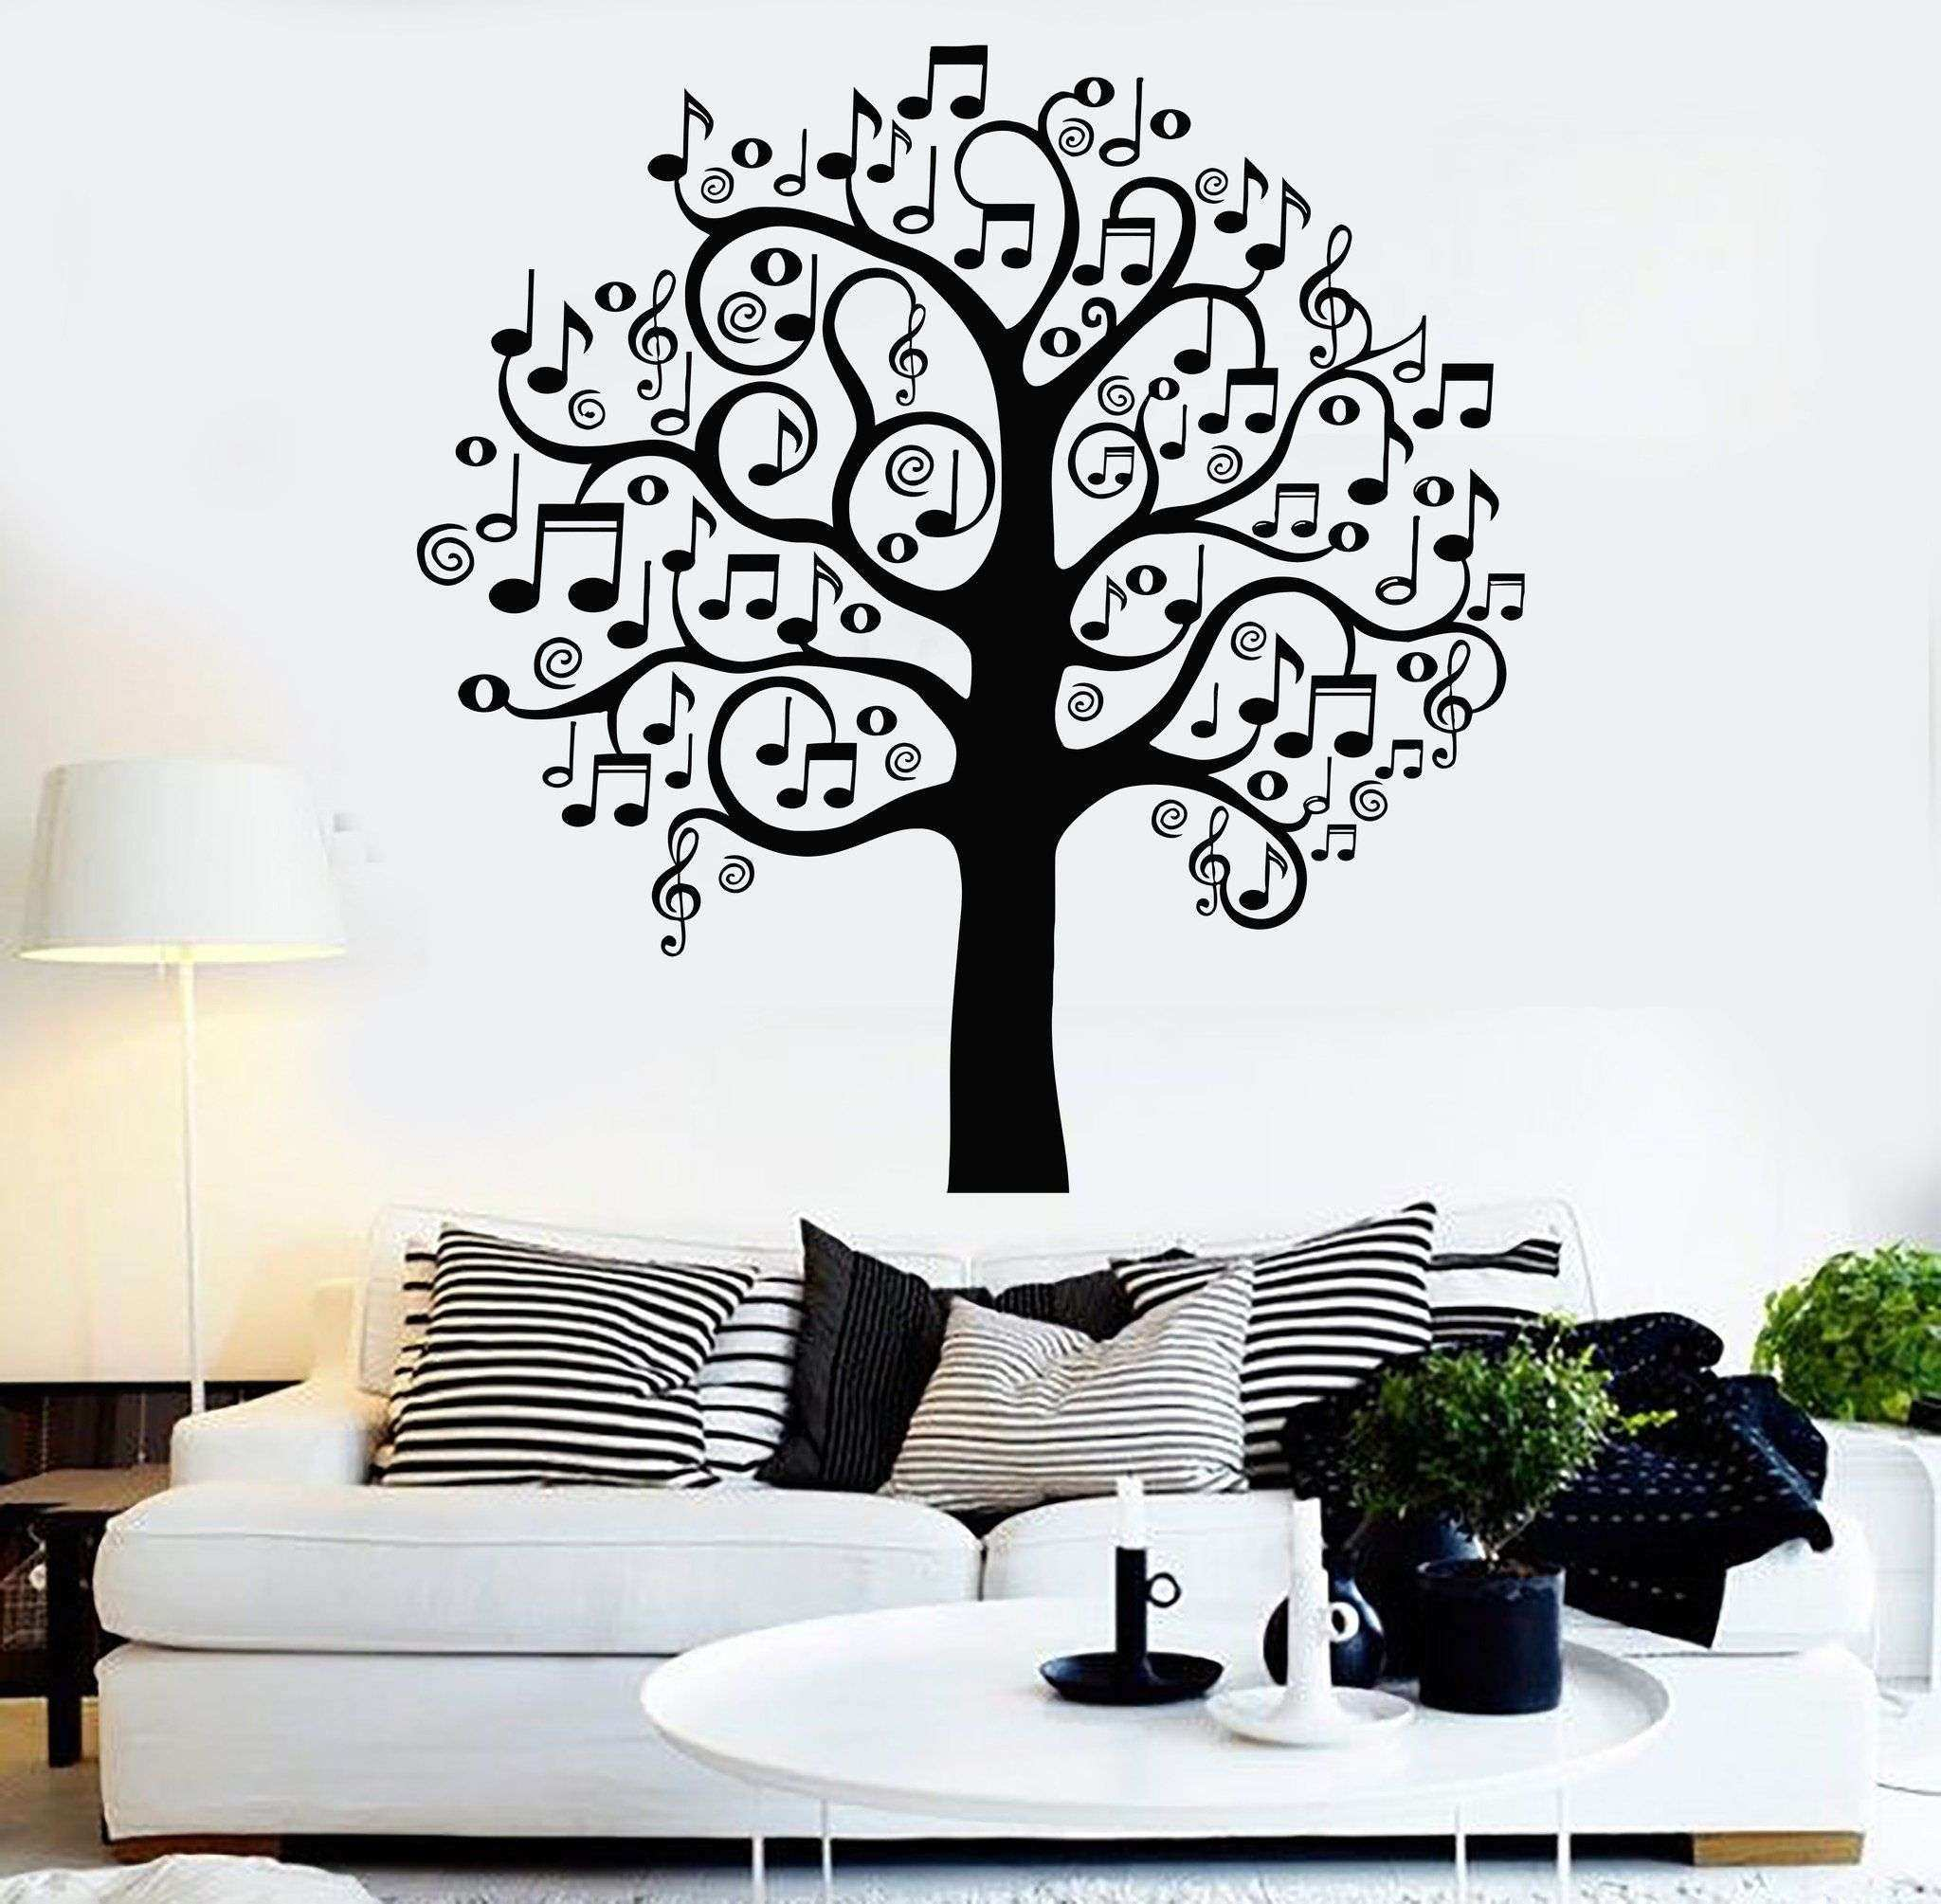 Wall Decor Stickers for Bedroom New Vinyl Wall Decal Musical Tree